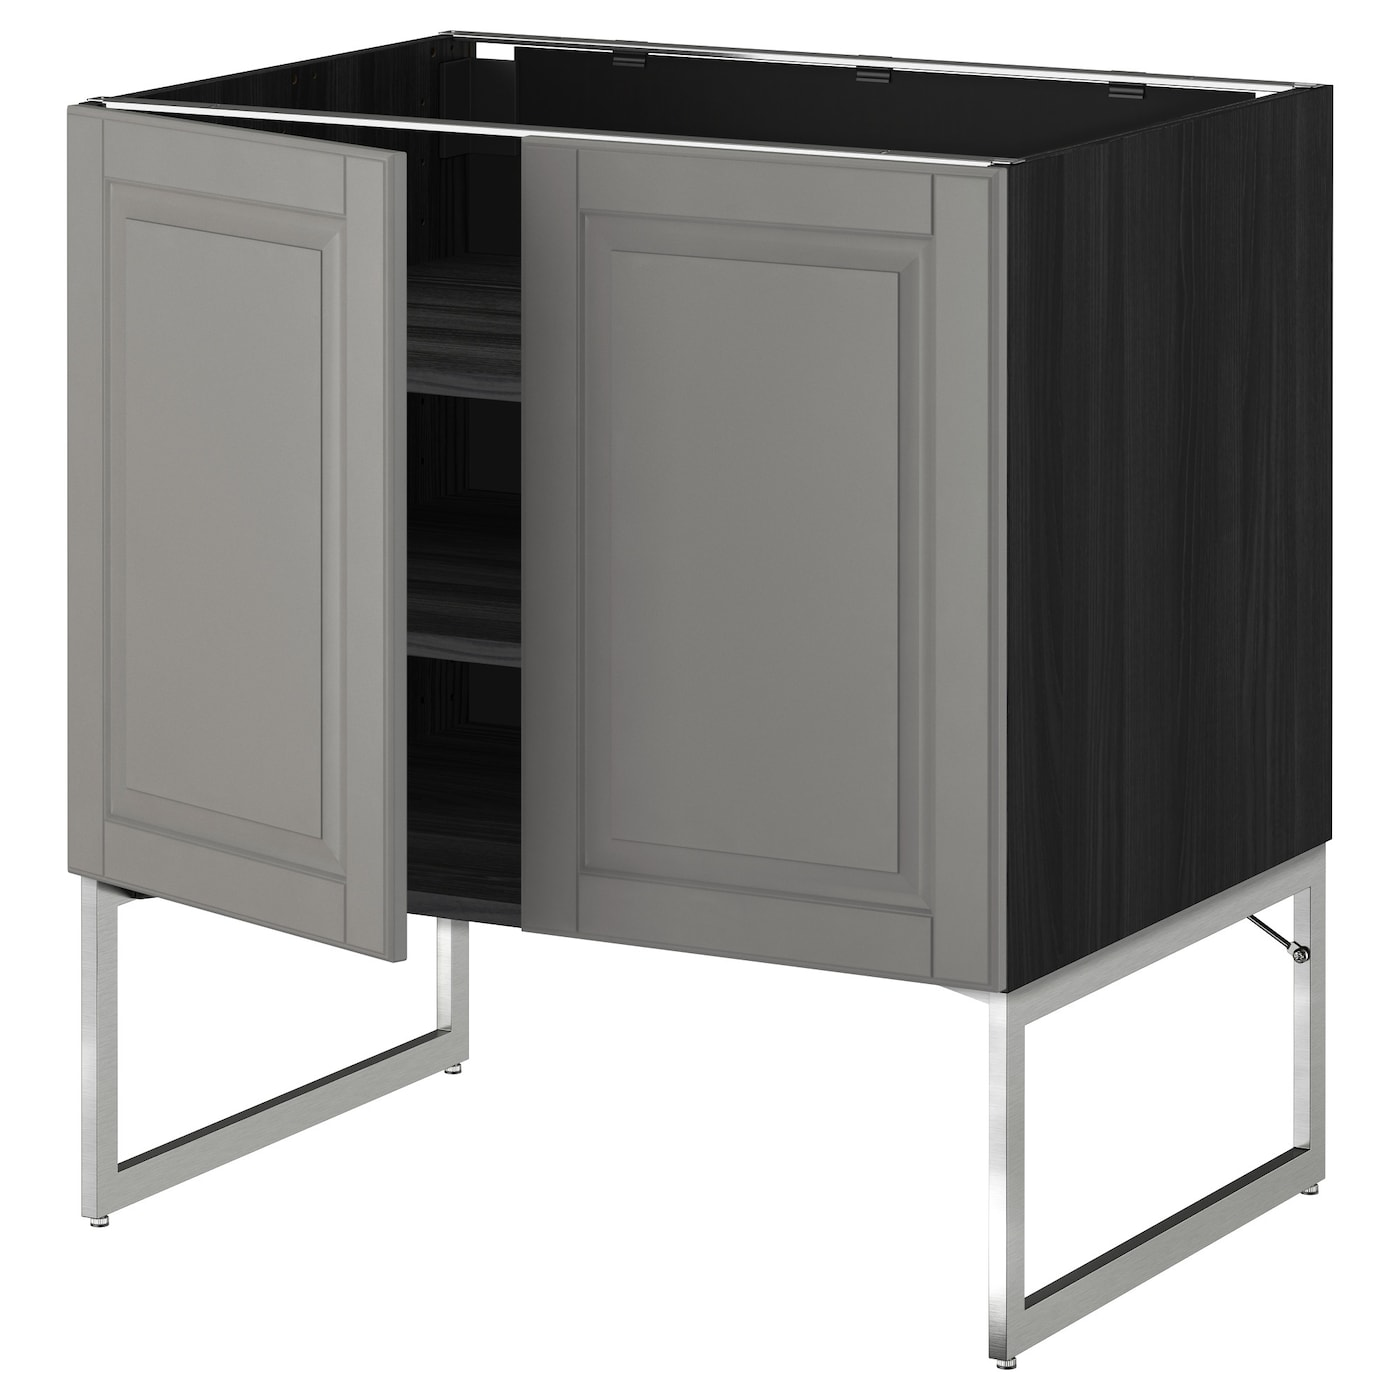 black base kitchen cabinets metod base cabinet with shelves 2 doors black bodbyn grey 12317